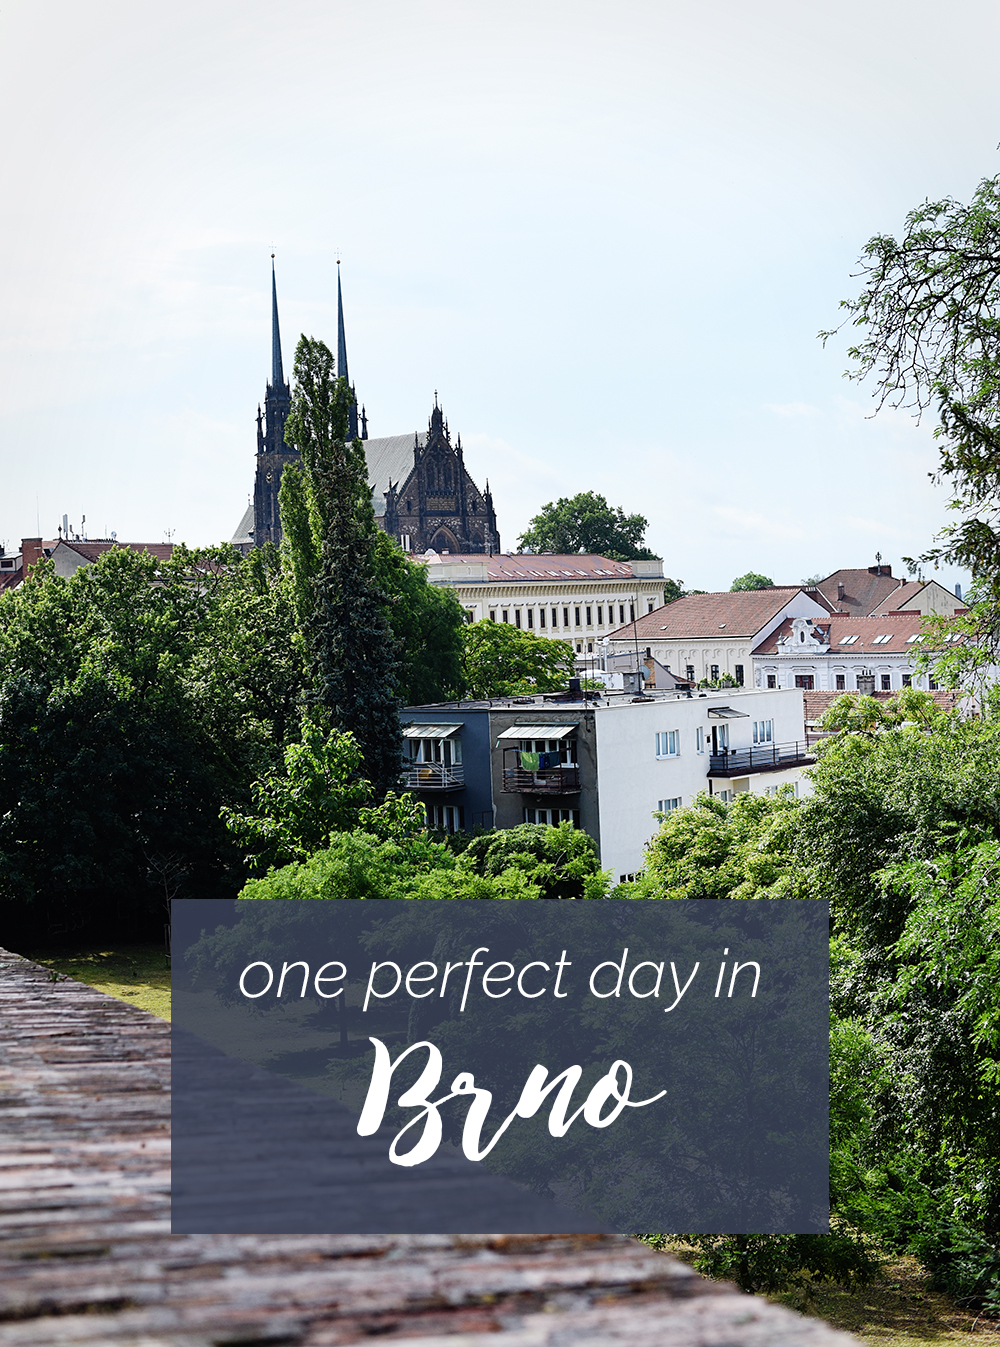 We spent one perfect day in Brno, Czech Republic, and I fell in love.